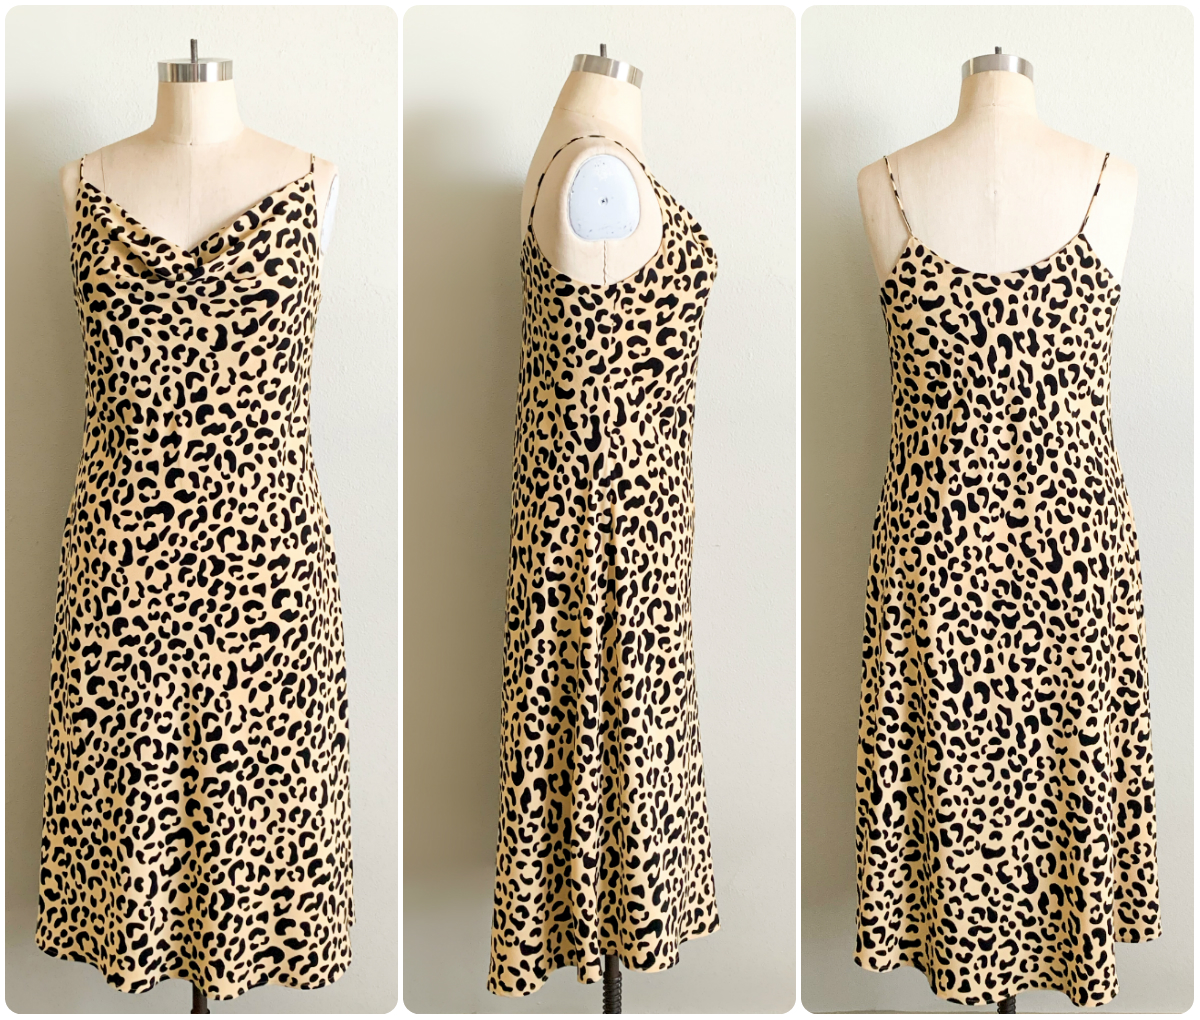 Sewing Masin Sicily Slip Dress - Erica Bunker DIY Style!